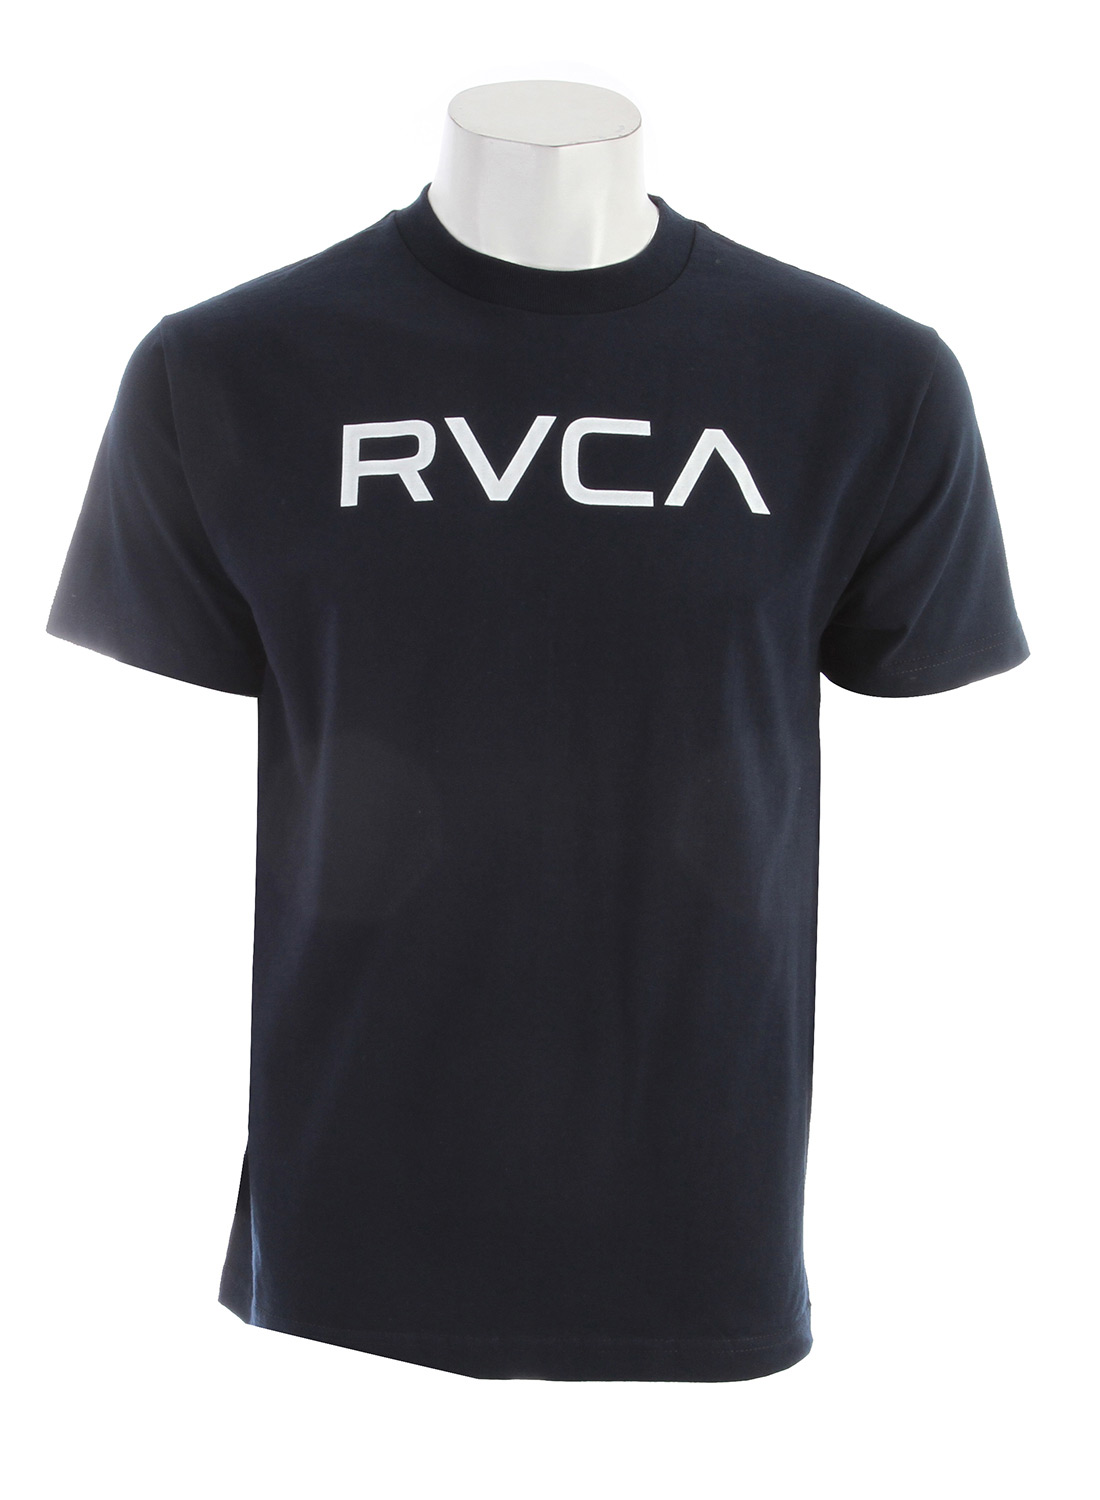 Entertainment Key Features of the RVCA Big RVCA Industrial T-Shirt: BLK, NVY WHT: 100% Cotton ATH: 90% Cotton/10% Polyester Heavier weight short sleeve crew tee Screen print front and screened inside neck - $22.00